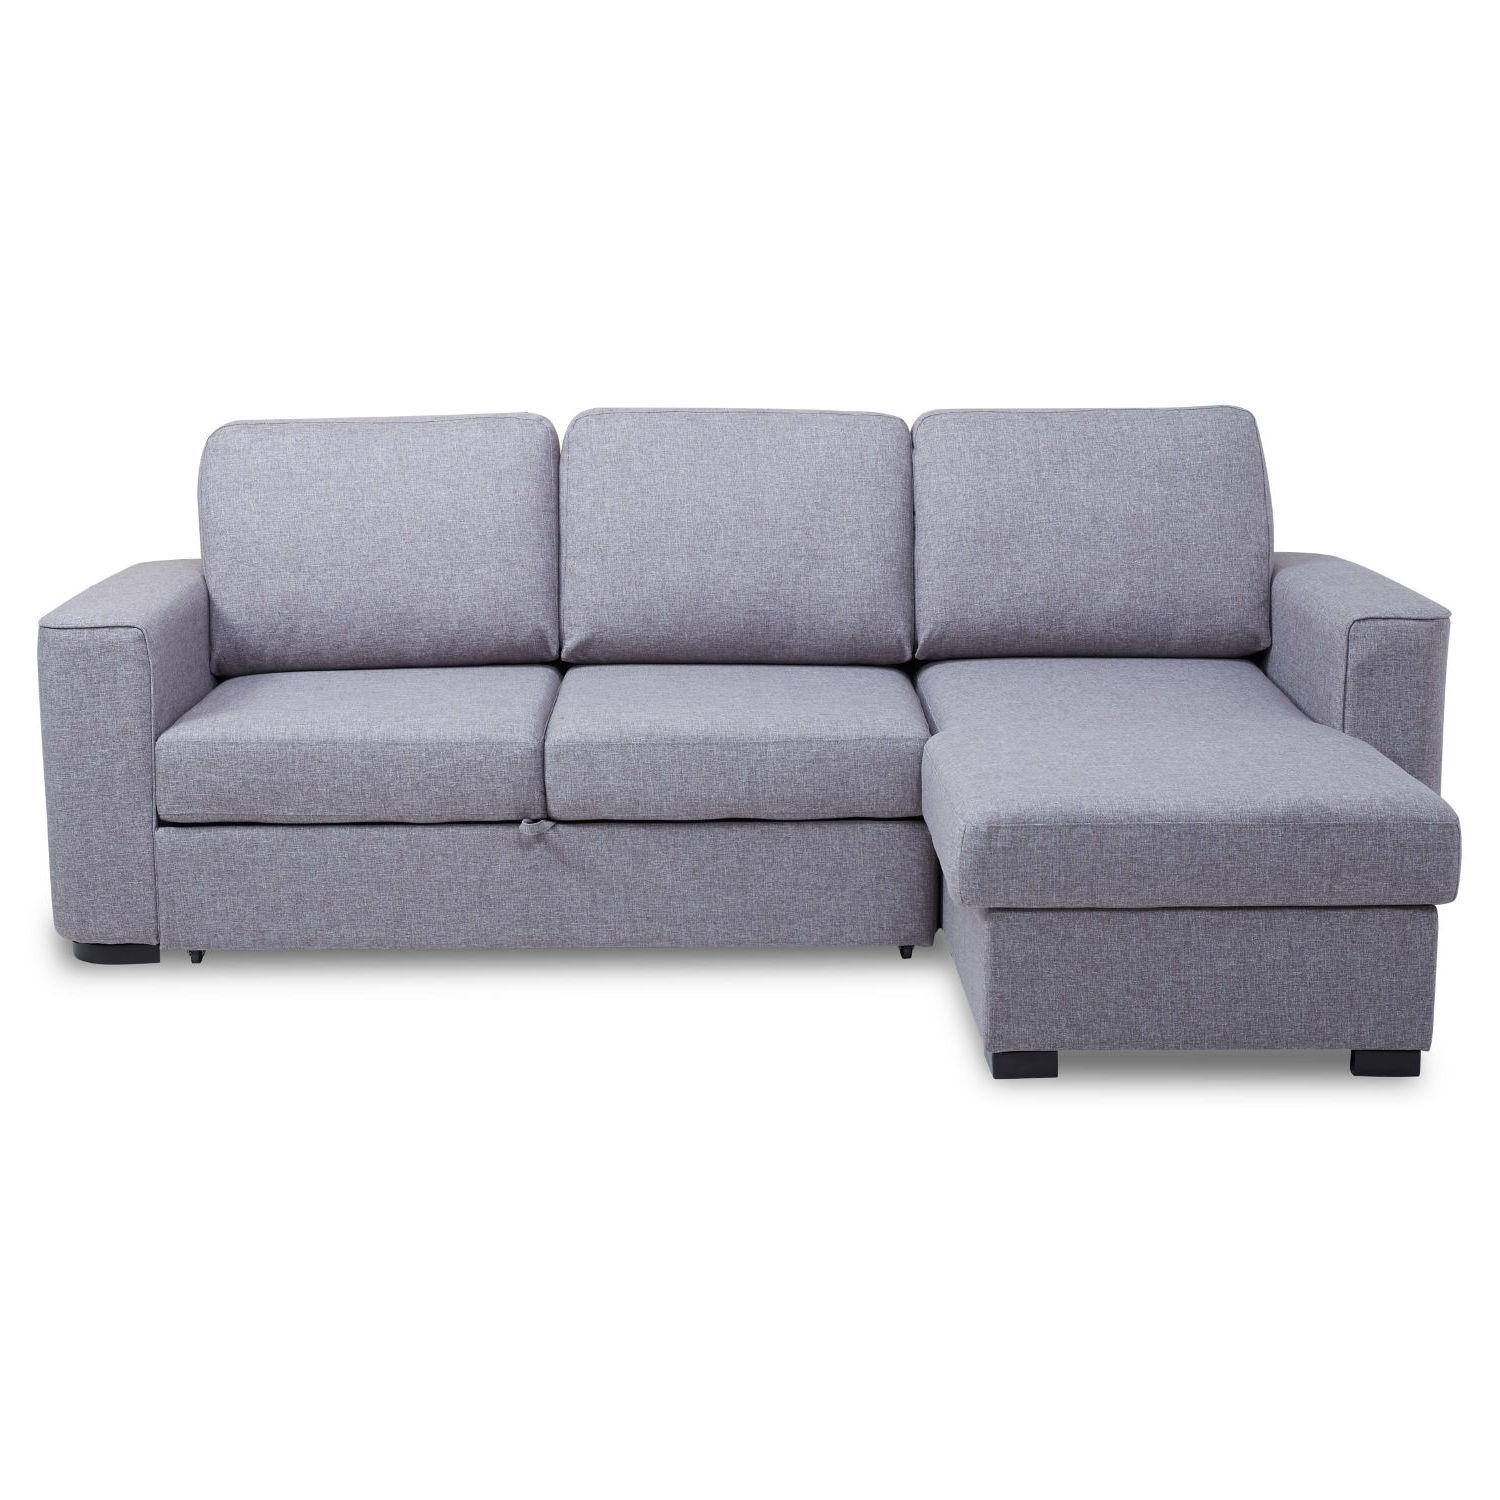 Sofa Bed With Storage Chaise Metro Lounge Costco Sectional In Sofa Beds With Storage Chaise (Image 13 of 20)